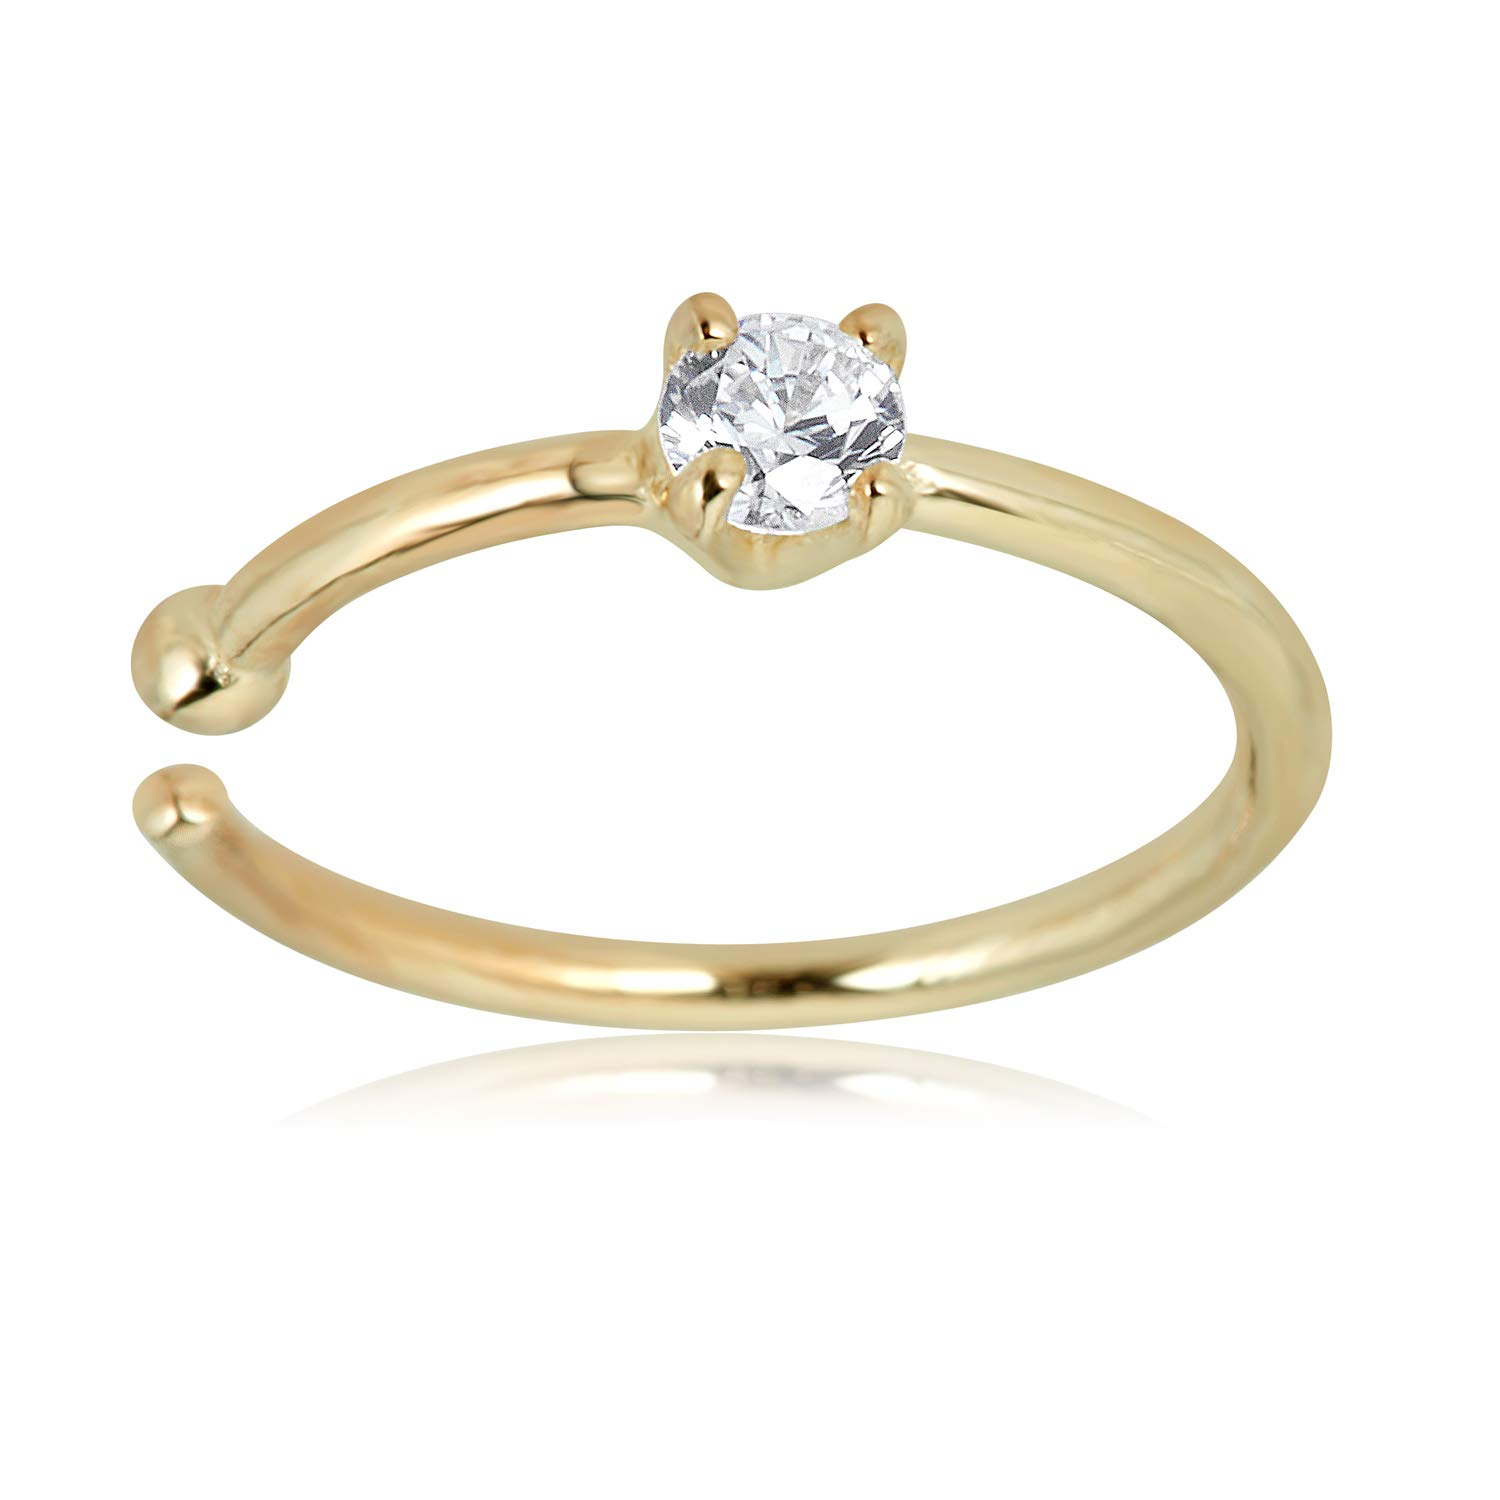 AVORA 14K Yellow Gold 2mm Simulated Diamond CZ Nose Hoop Ring - 20 Gauge by AVORA (Image #1)